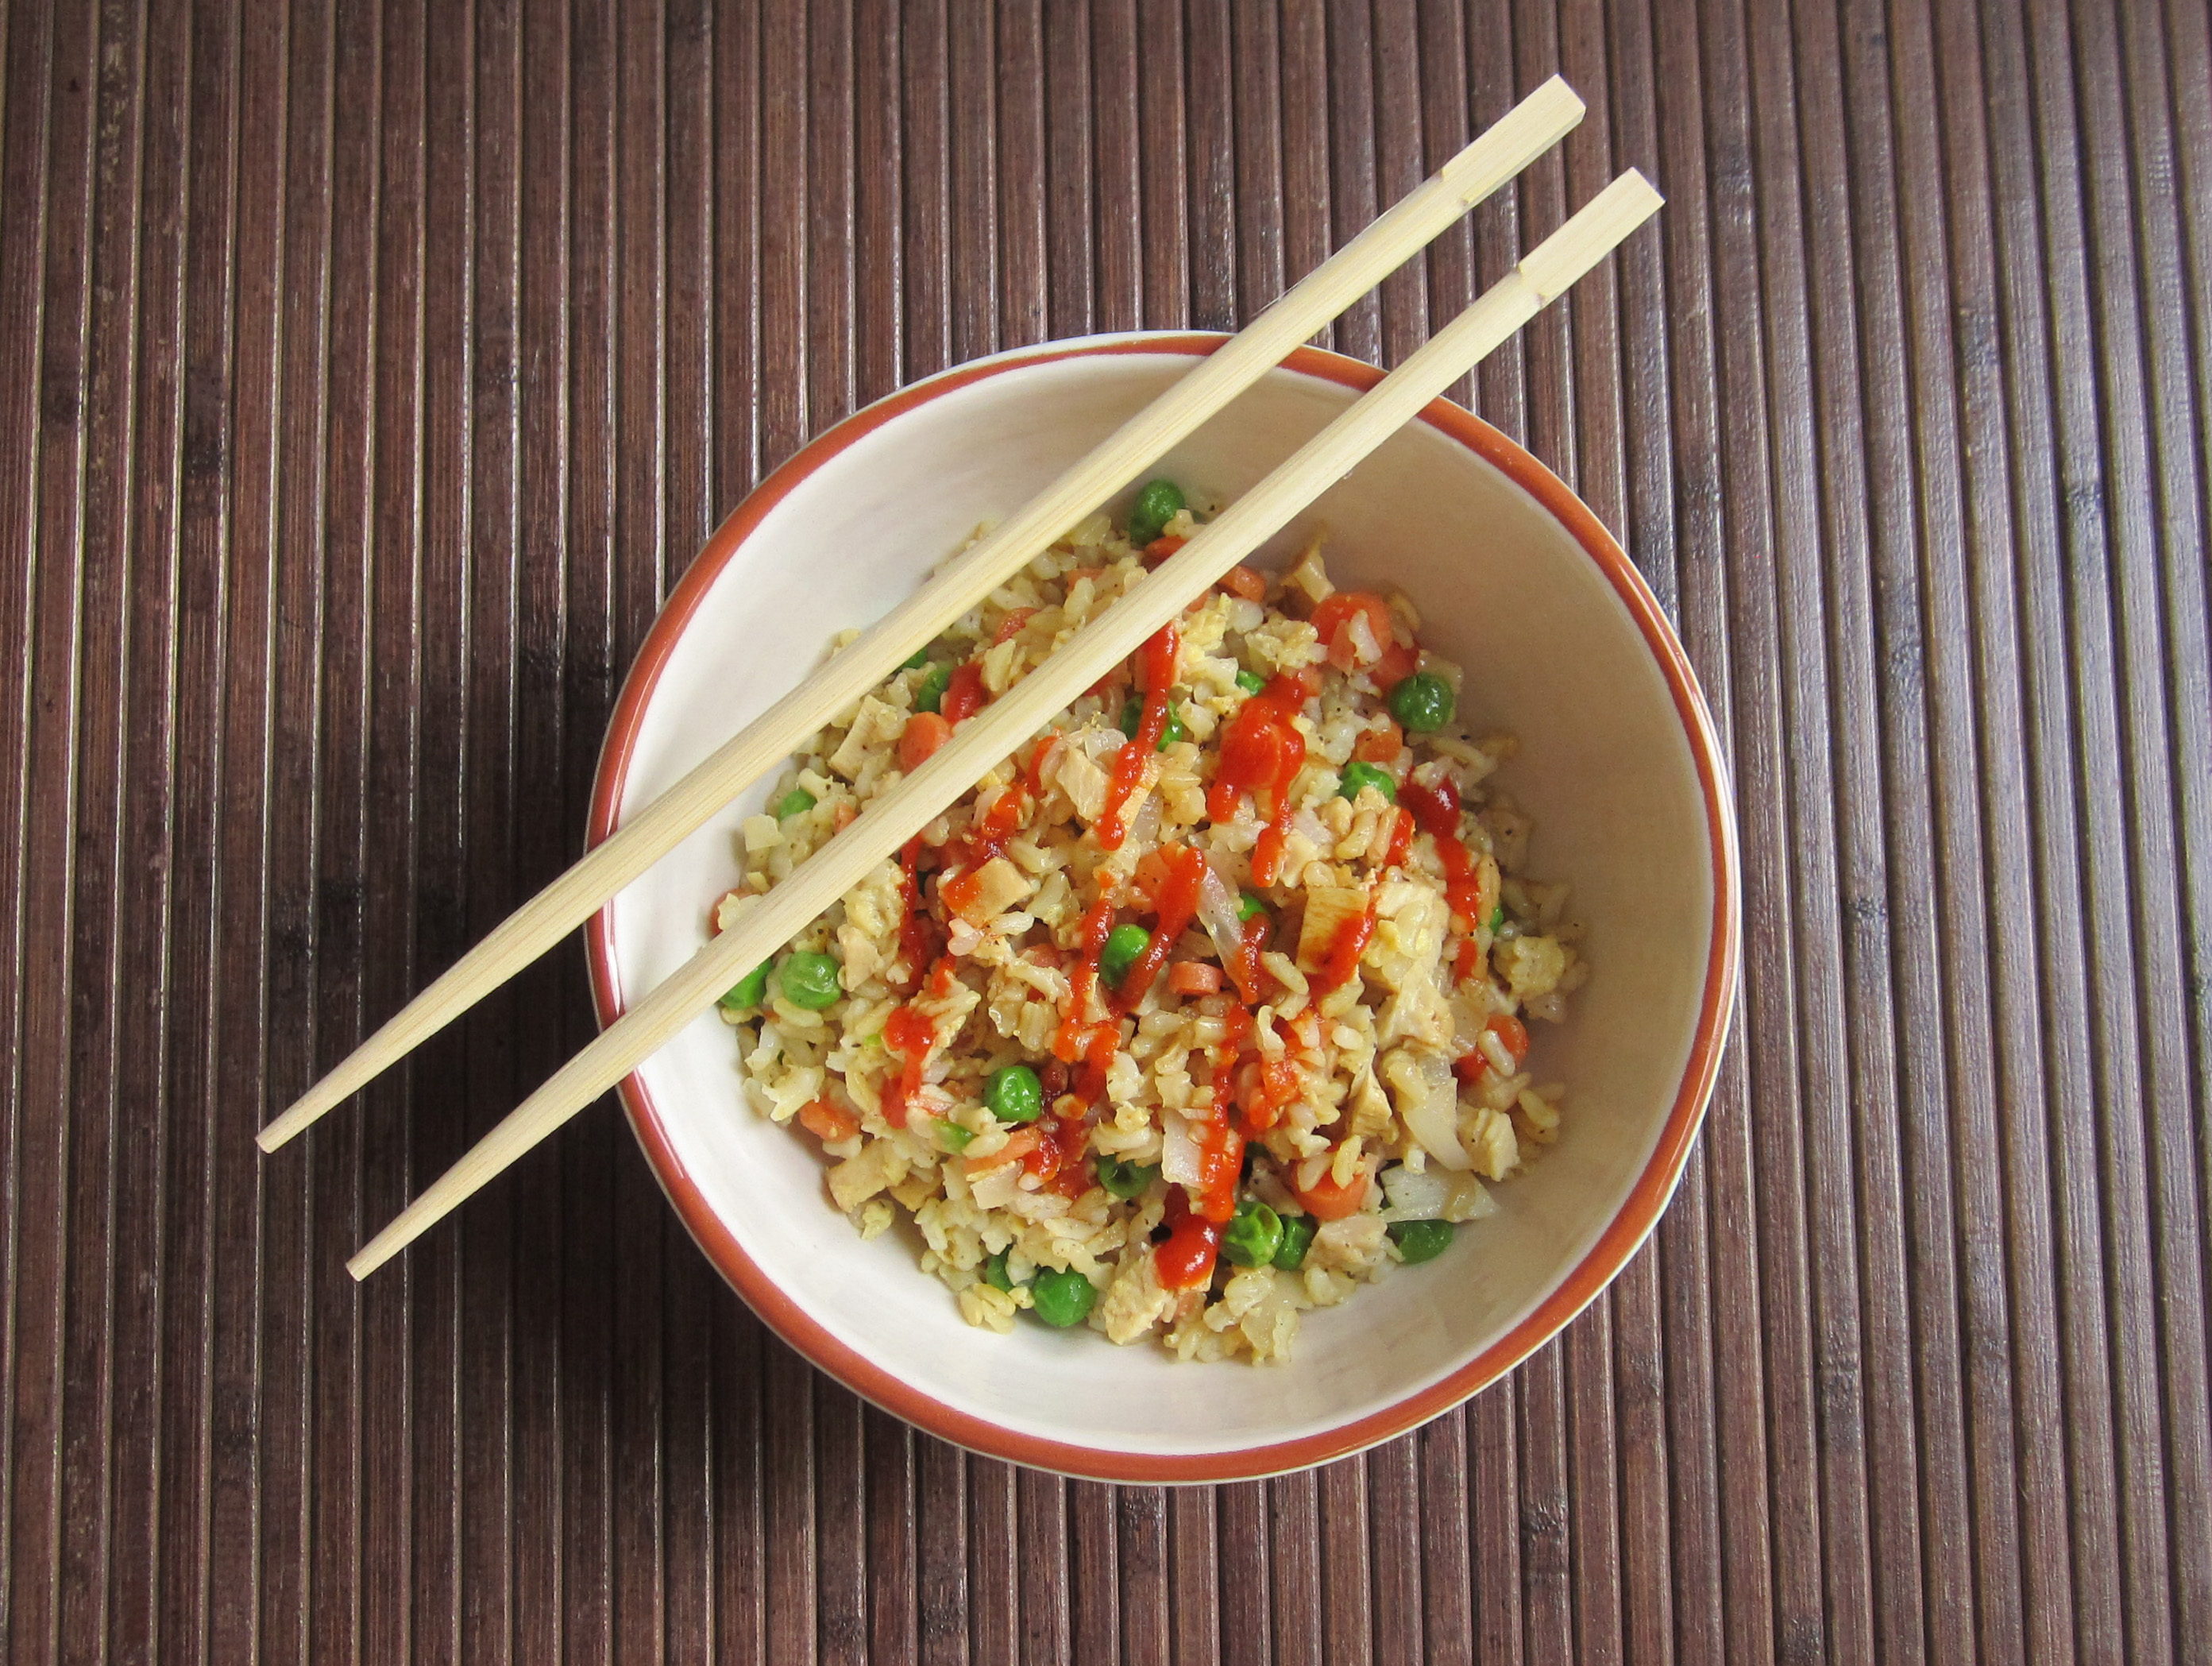 a bowl of homemade chicken fried rice with vegetables.